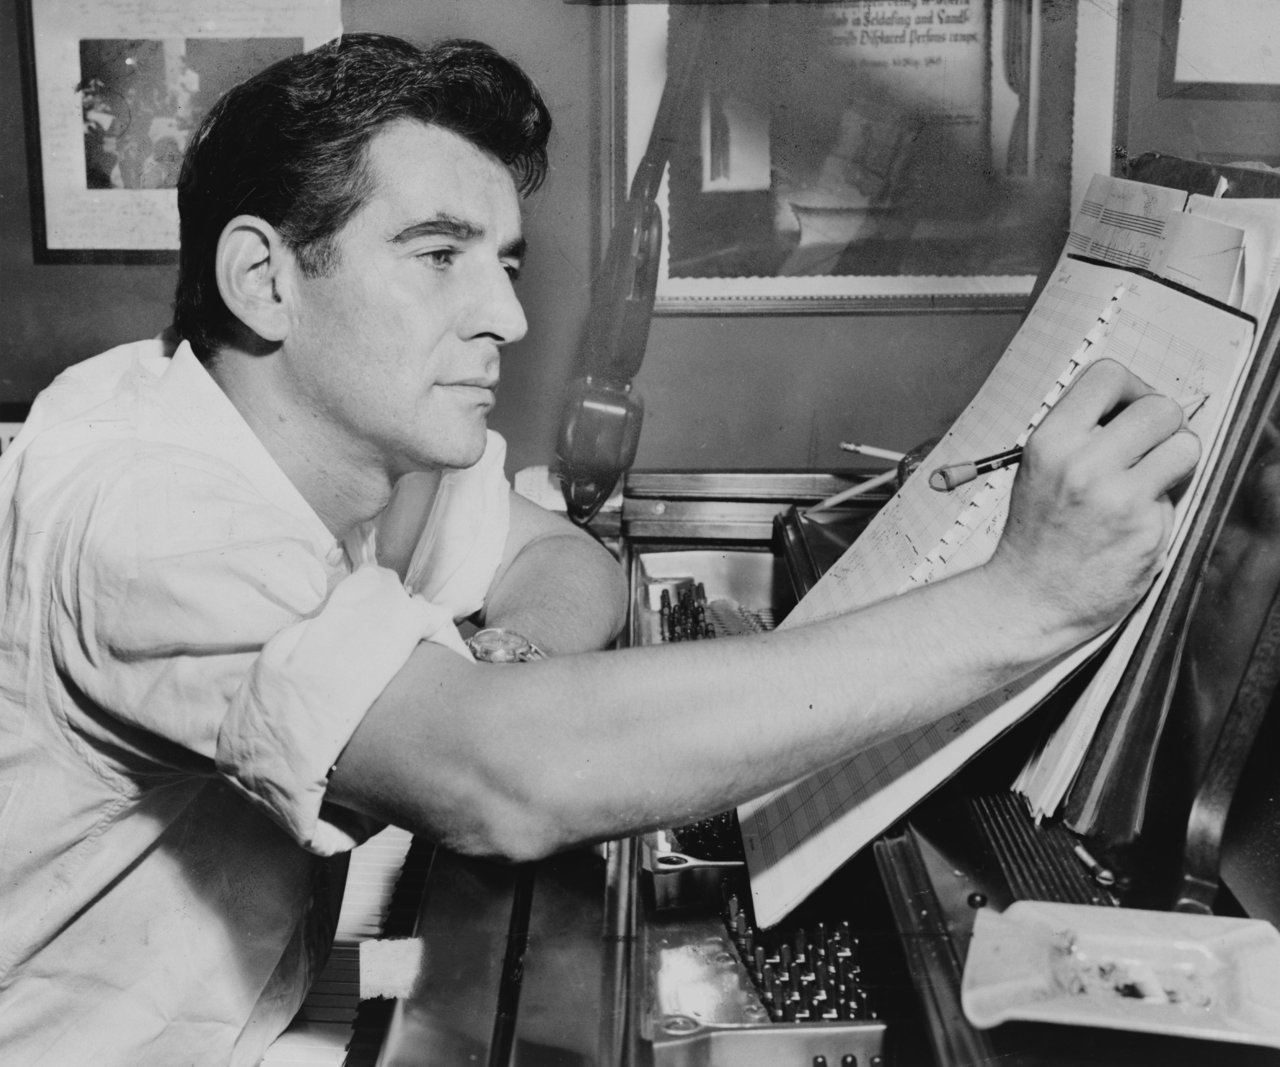 legrandcirque:  Al Ravenna, Leonard Bernstein seated at piano, making annotations to musical score, 1955. Source: Library of Congress. New York World-Telegram & Sun Collection